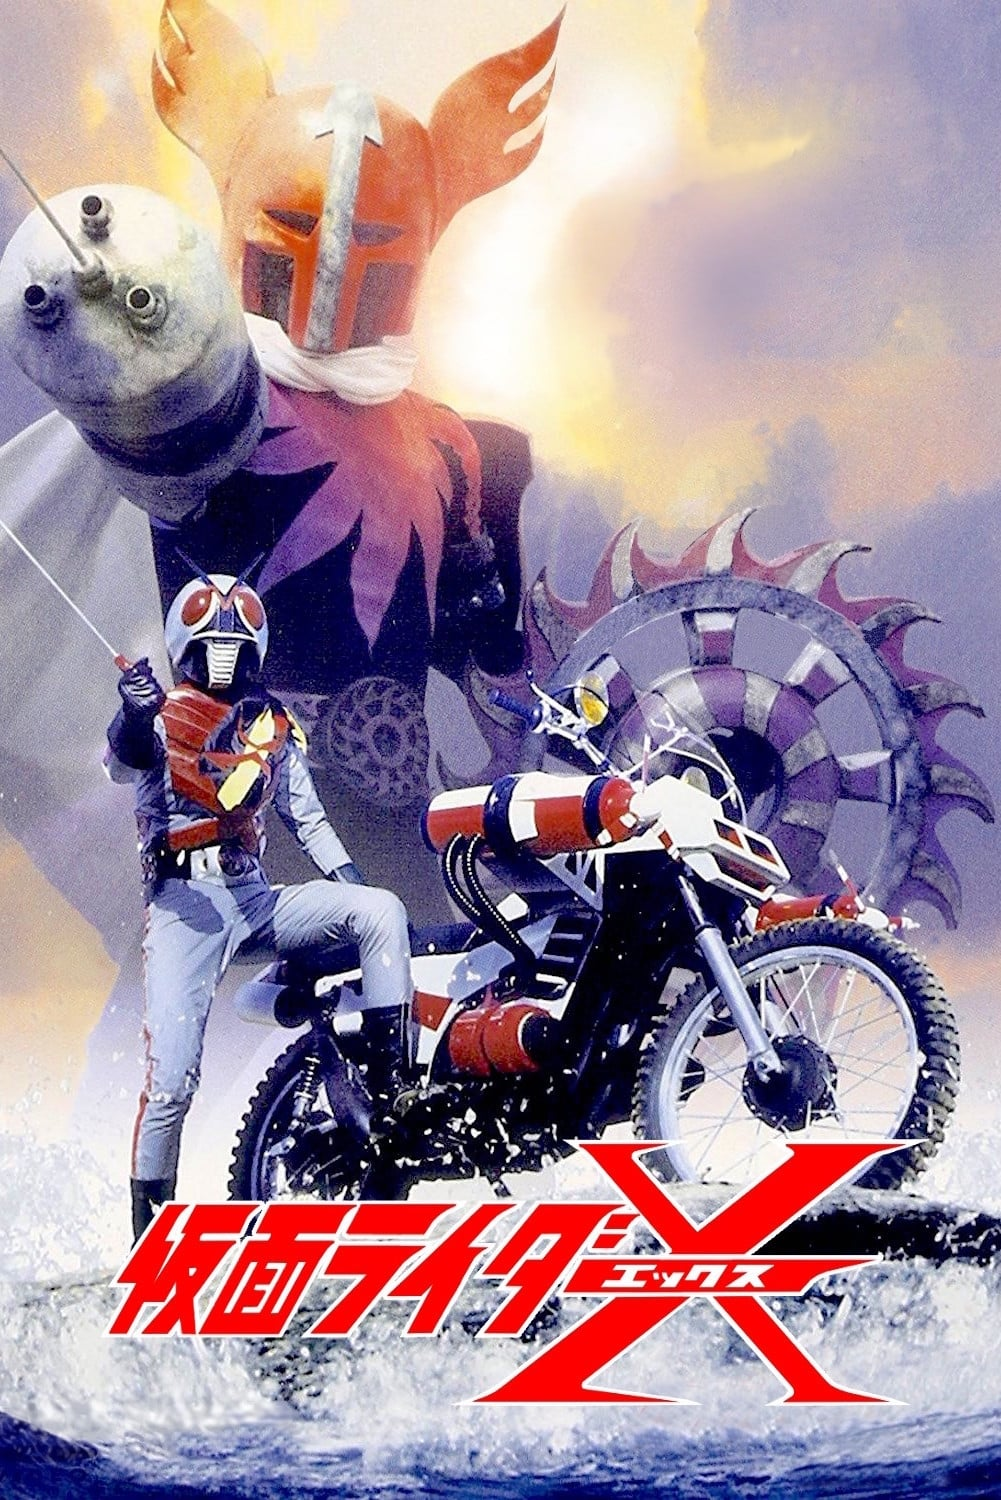 Kamen Rider - Season 21 Episode 2 : Greed, Ice Candy, Present Season 3